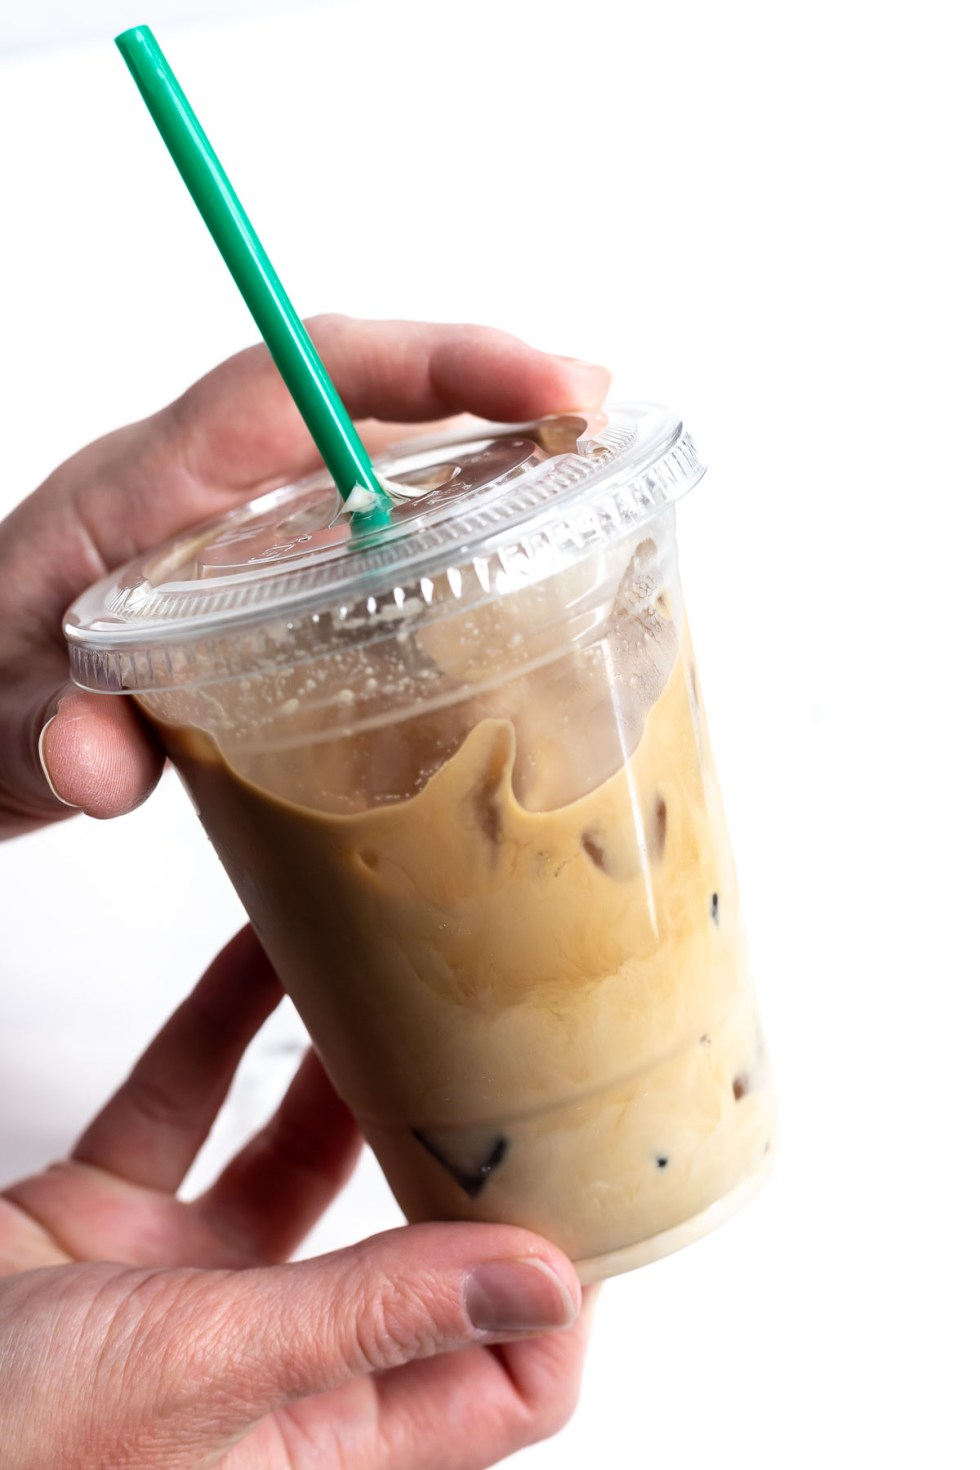 hand holding plastic cup filled with creamy coffee